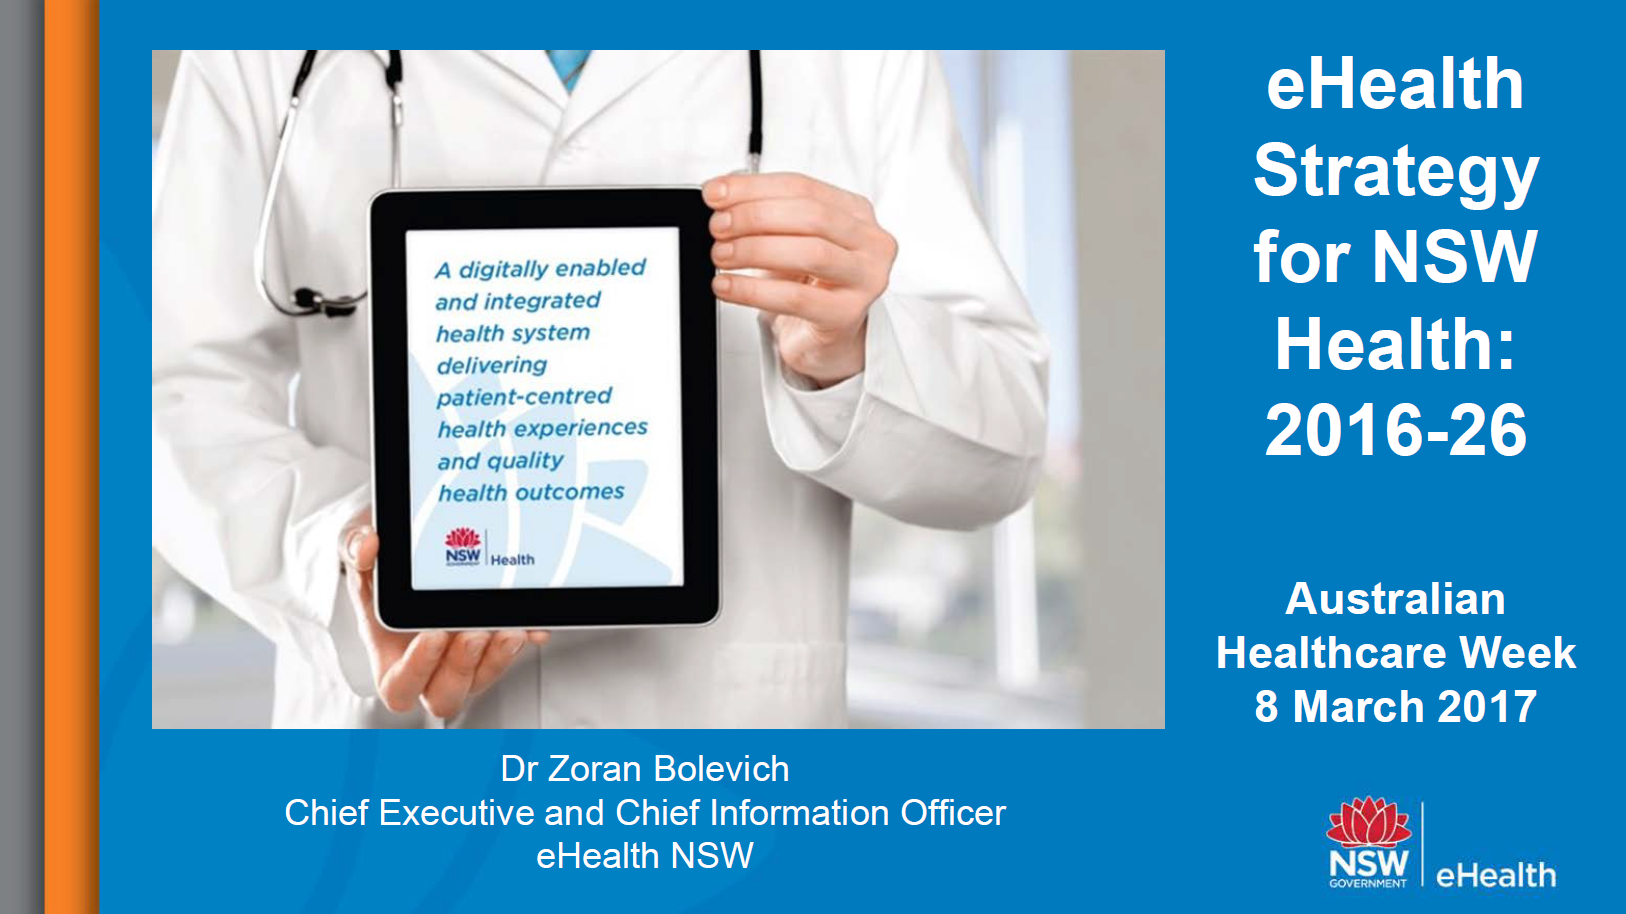 The NSW 10-year eHealth Strategy: The NSW 10- year eHealth Strategy: Digitally-Enabled and Integrated Health System for Safe, Quality Patient Care